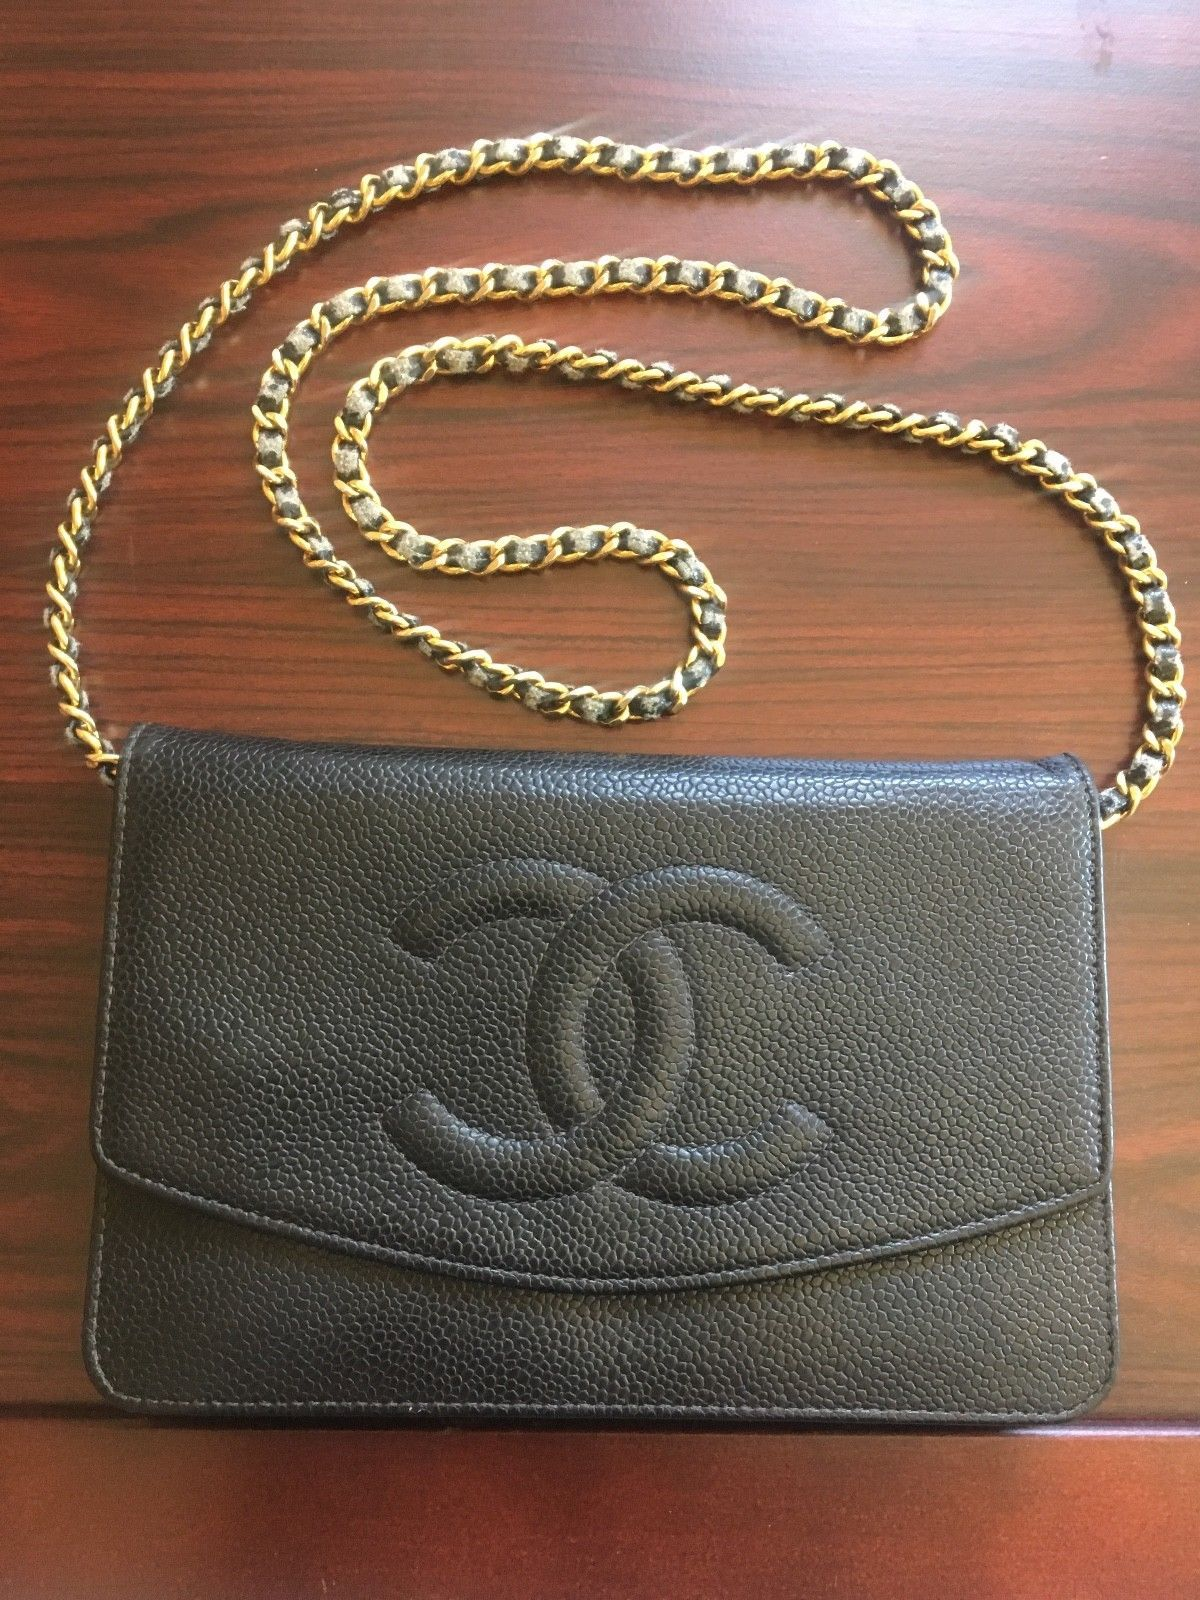 0af4637059d9 CHANEL CC logo Used Black Authentic Wallet on Chain bag Crossbody/Caviar  Leather